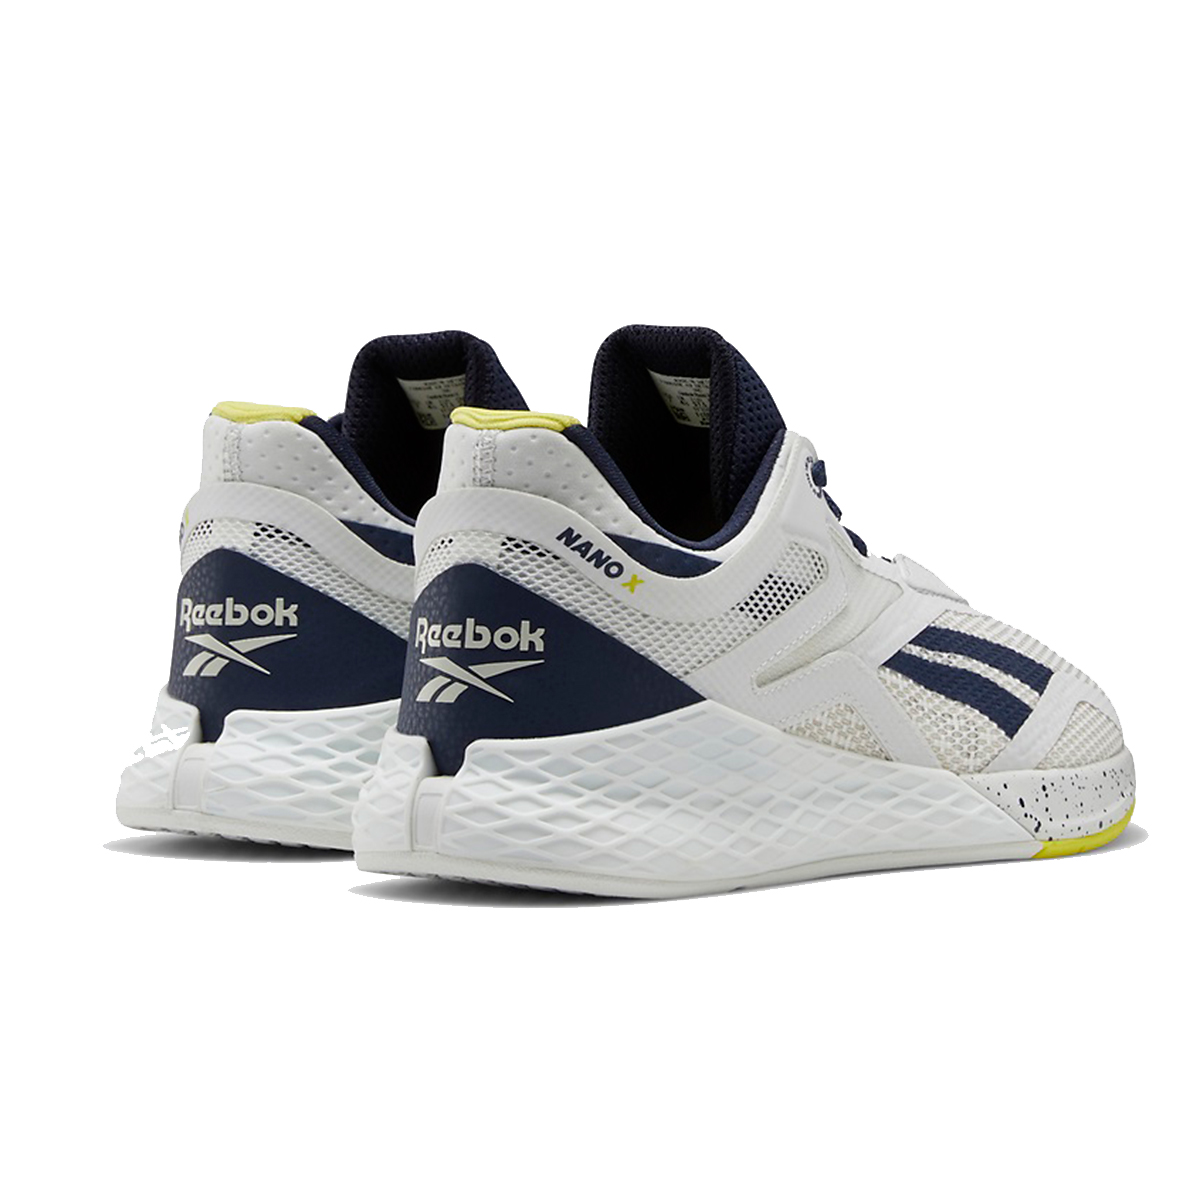 Women's Reebok Nano X Training Shoe - Color: True Grey/Vector Navy/Chartreuse - Size: 5 - Width: Regular, True Grey/Vector Navy/Chartreuse, large, image 3